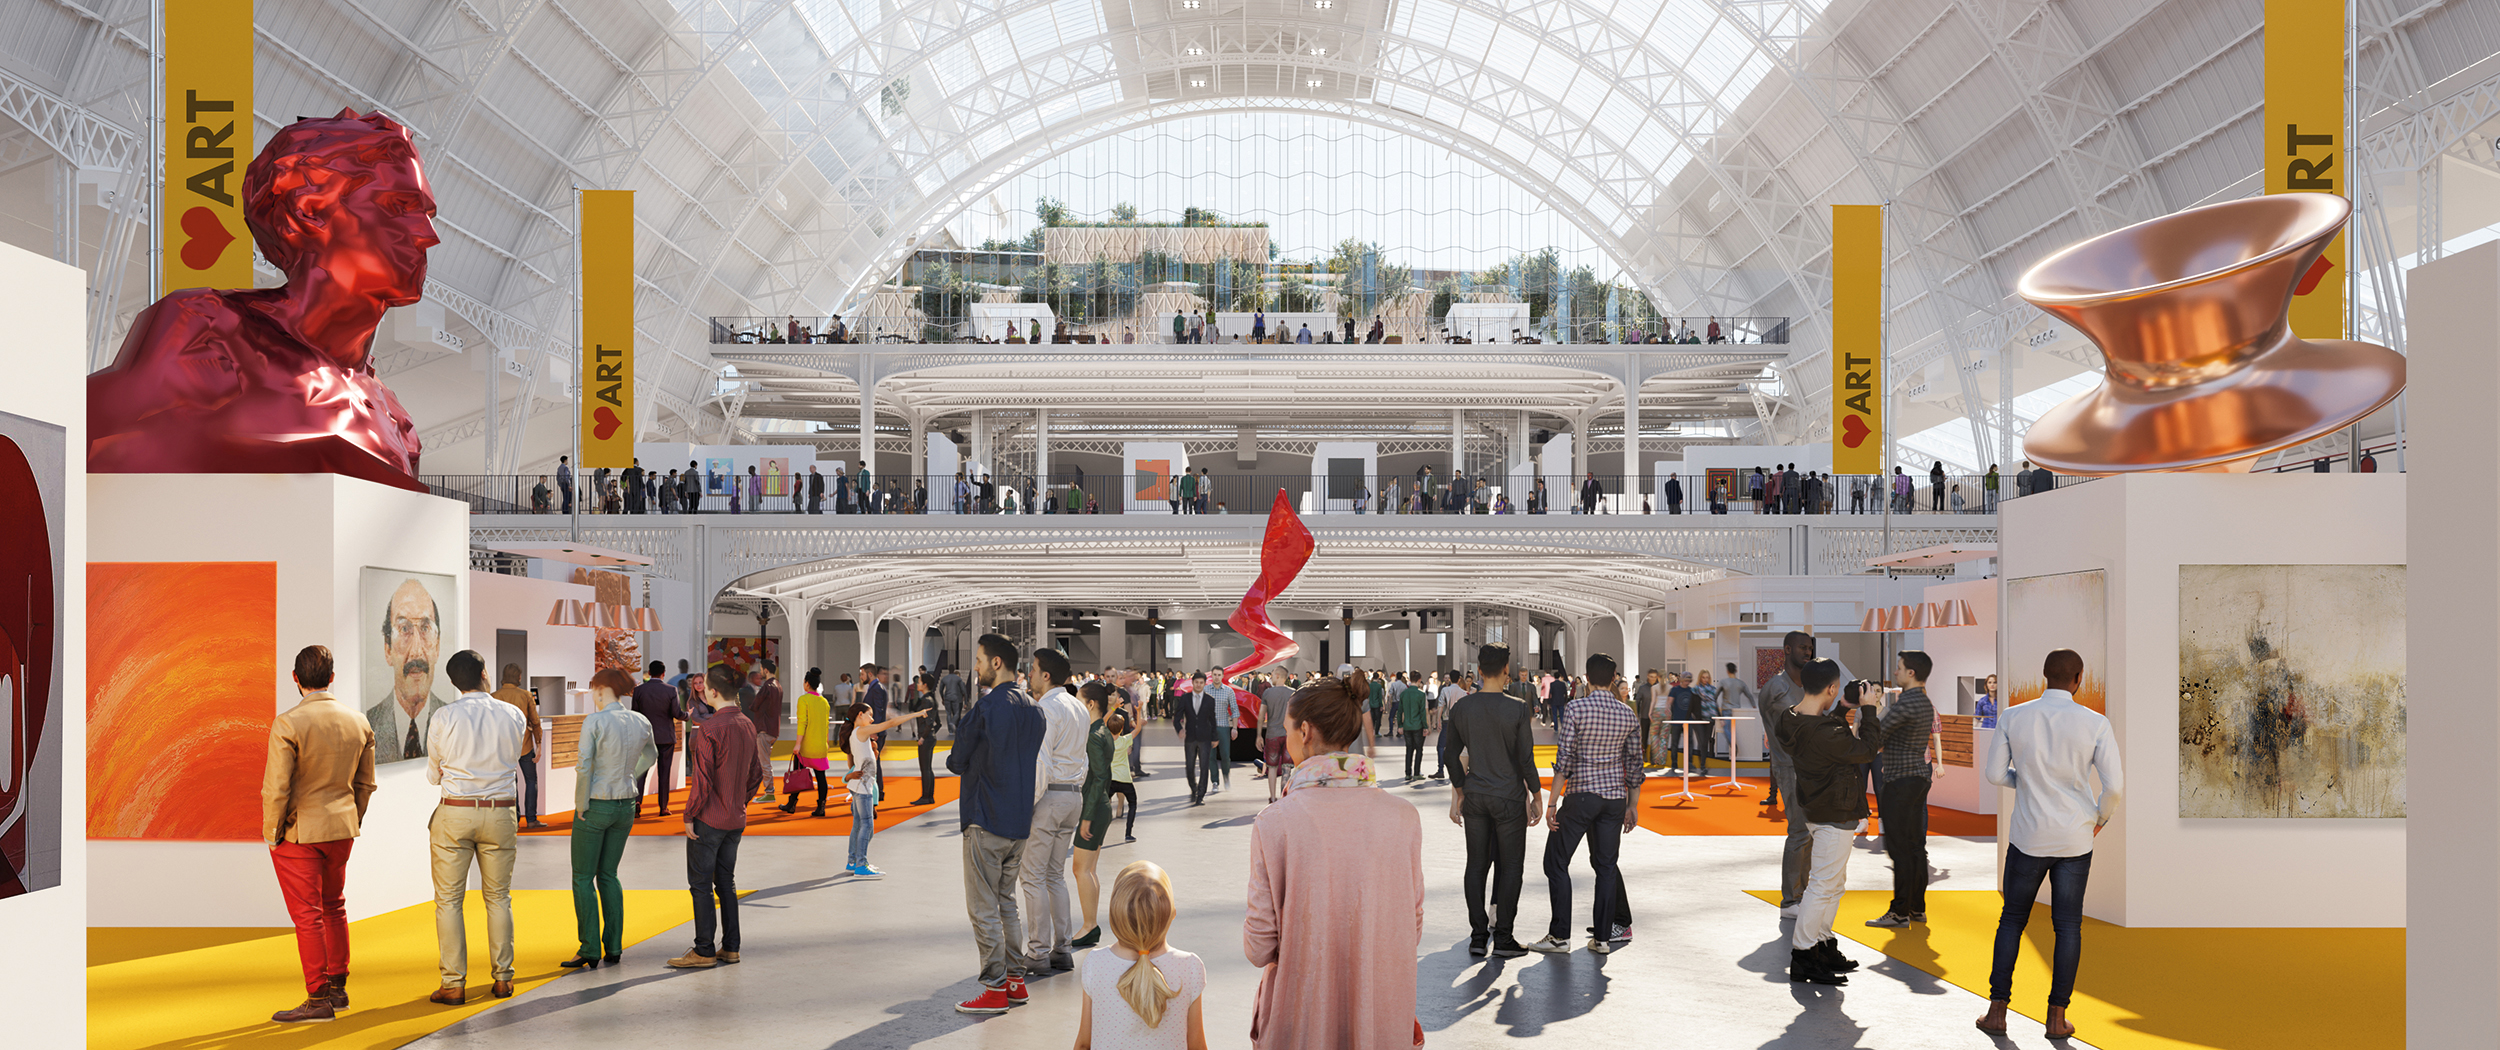 Olympia London - the Future - design by Thomas Heatherwick.jpg